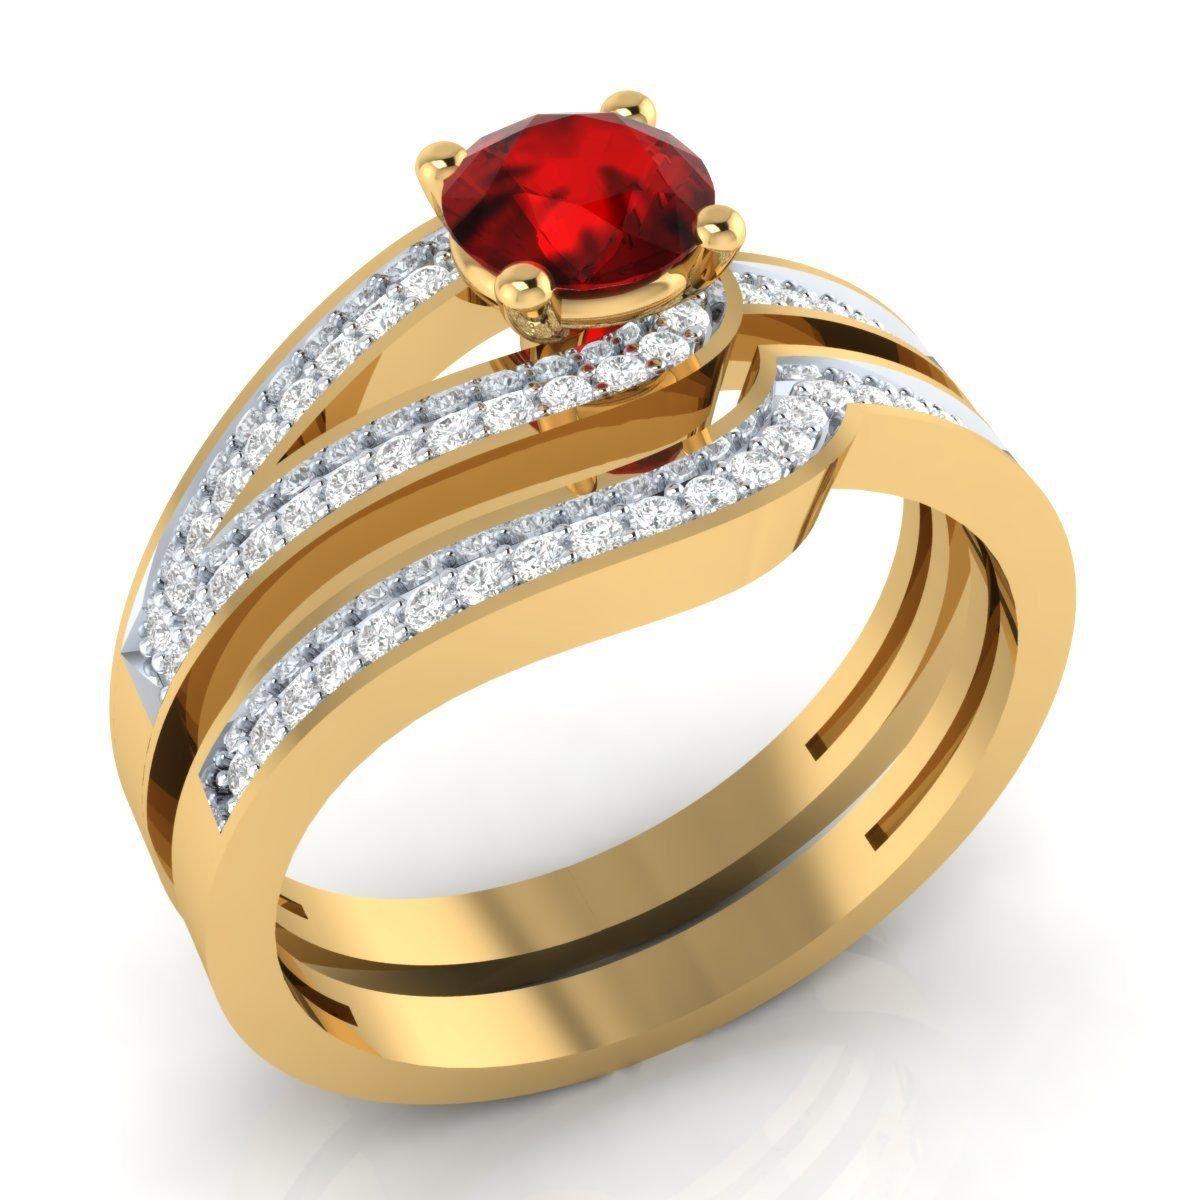 Amazon Awesome 102 Cttw Round Created Red Ruby White Cz Diamond Curved Wedding Band Engagement Bridal Ring Set 18k Yellow Gold Plated Jewelry: Ruby Wedding Ring Set 18k At Reisefeber.org